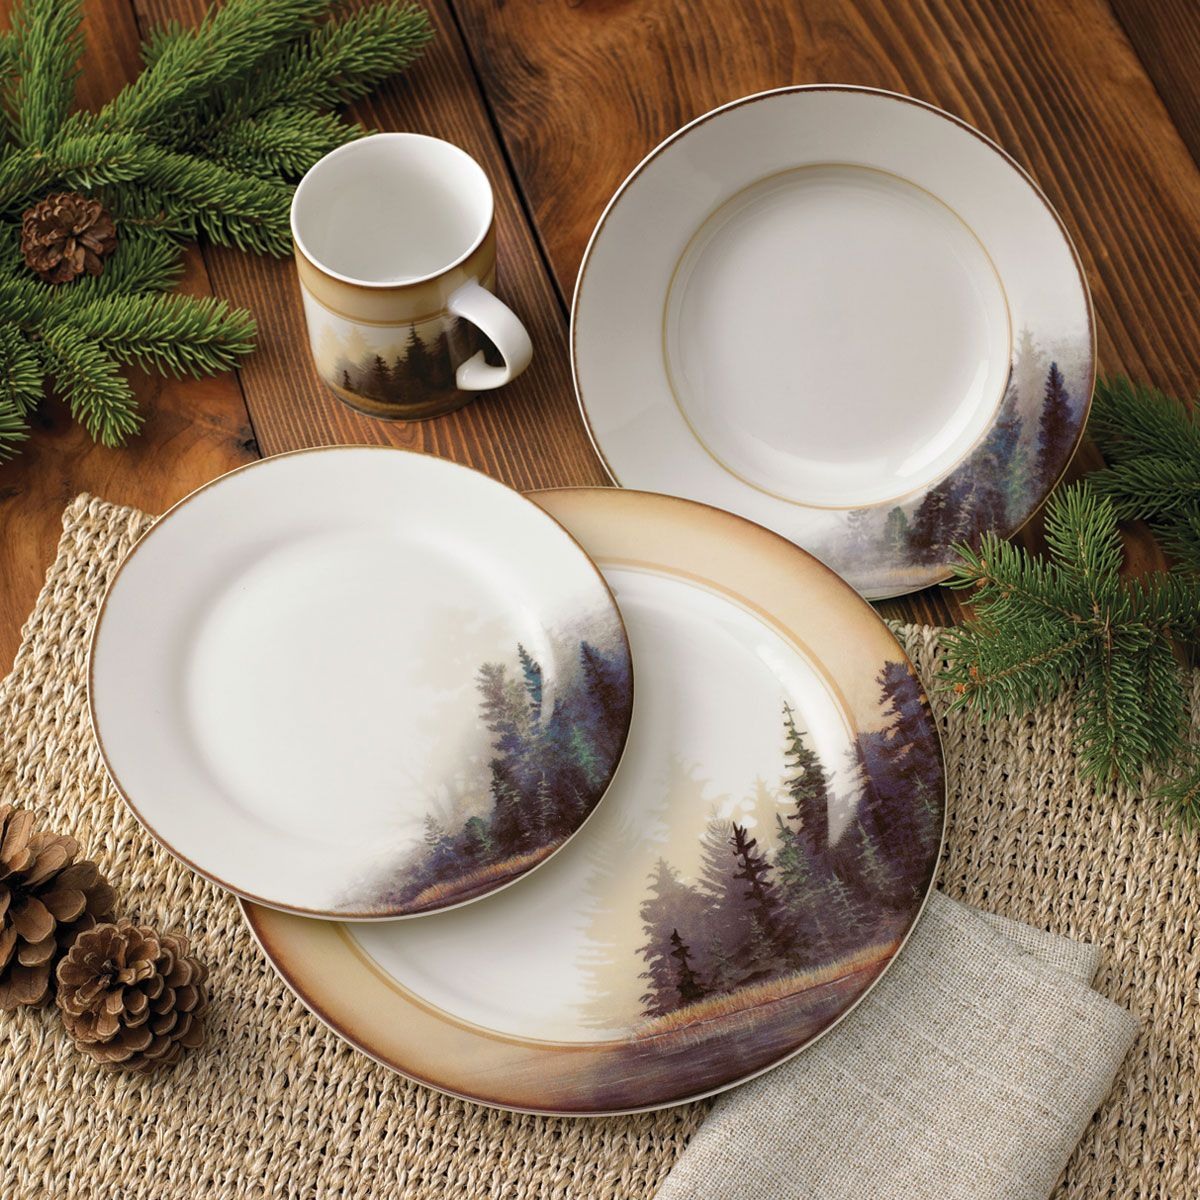 Superb Rustic Wildlife Dinnerware Sets With Moose U0026 Bear Designs